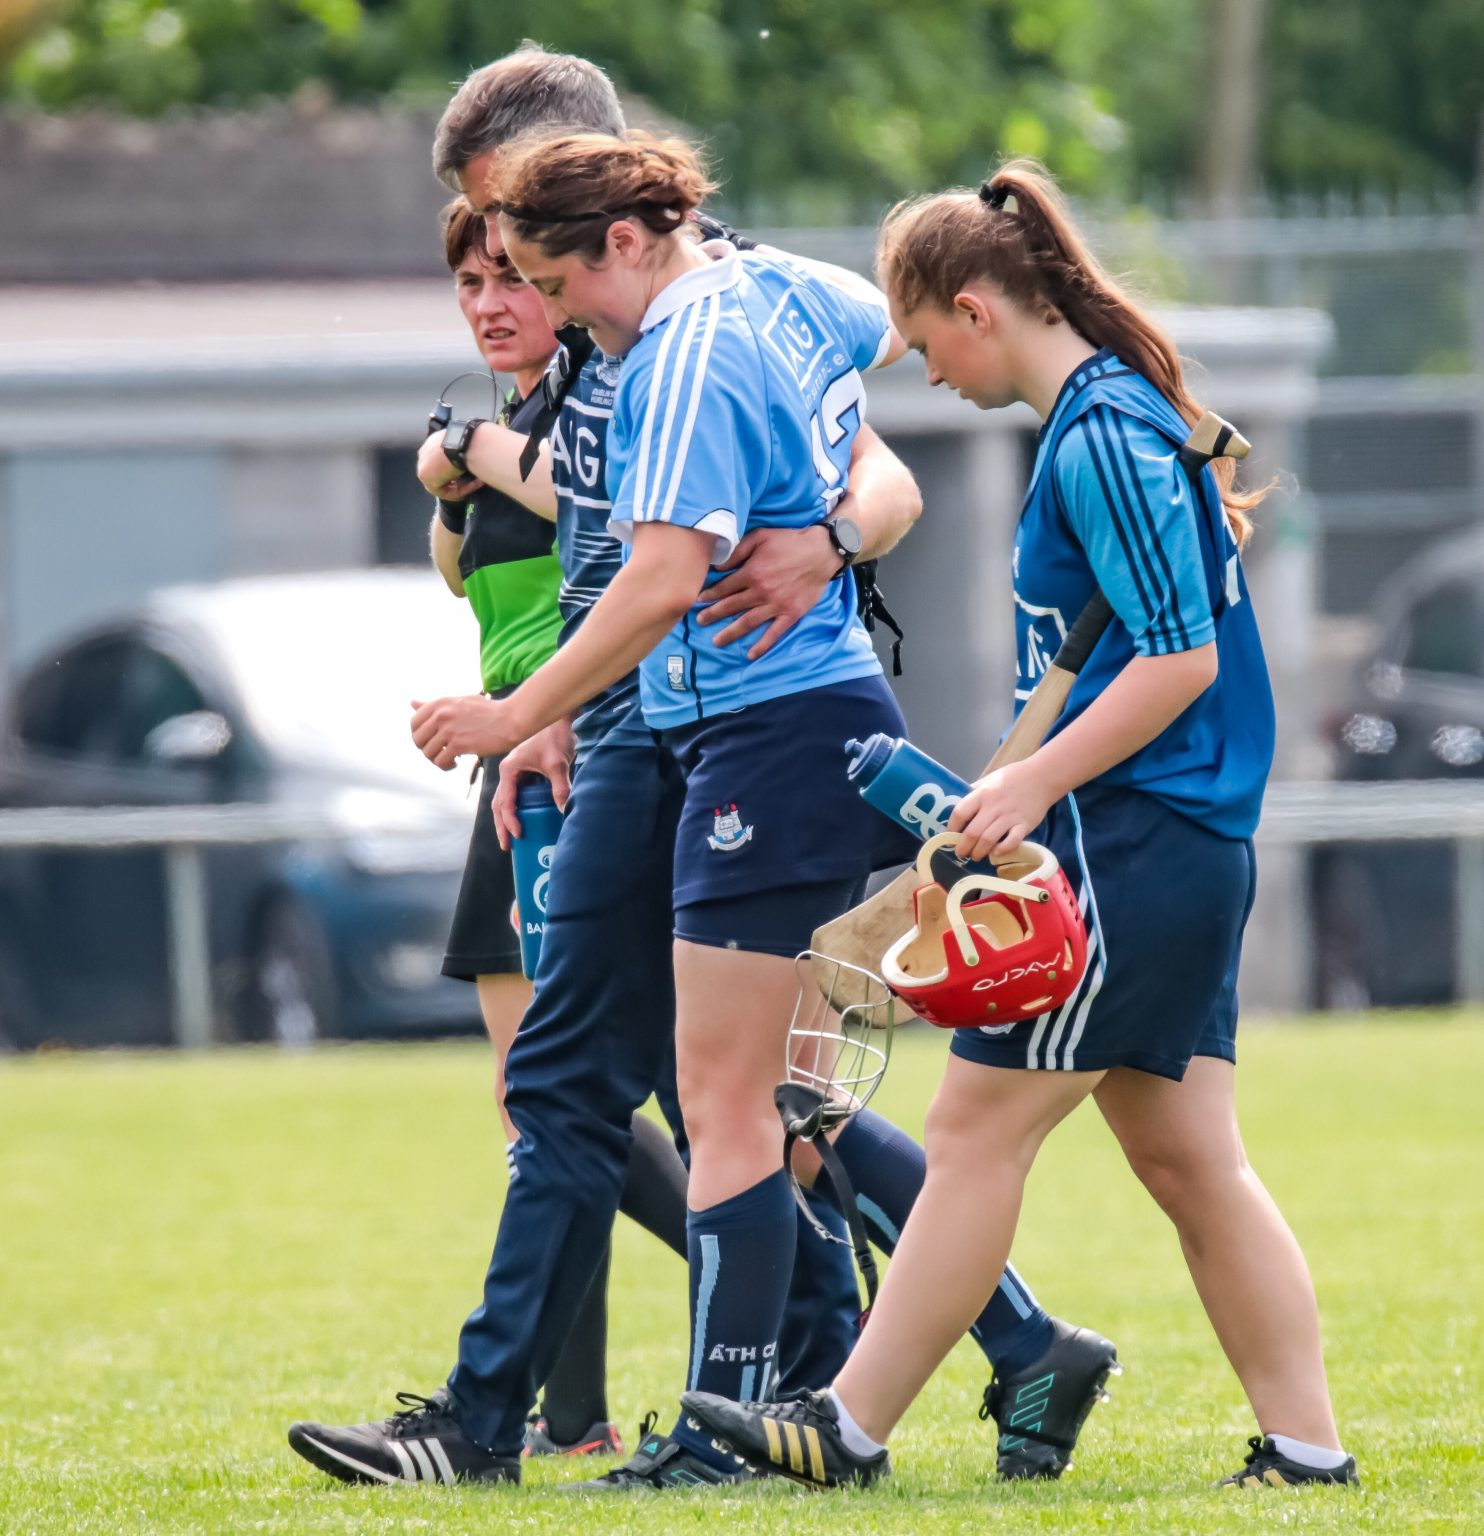 Dublin Captain In Sky Blue Jersey is helped off the pitch after injuring her knee